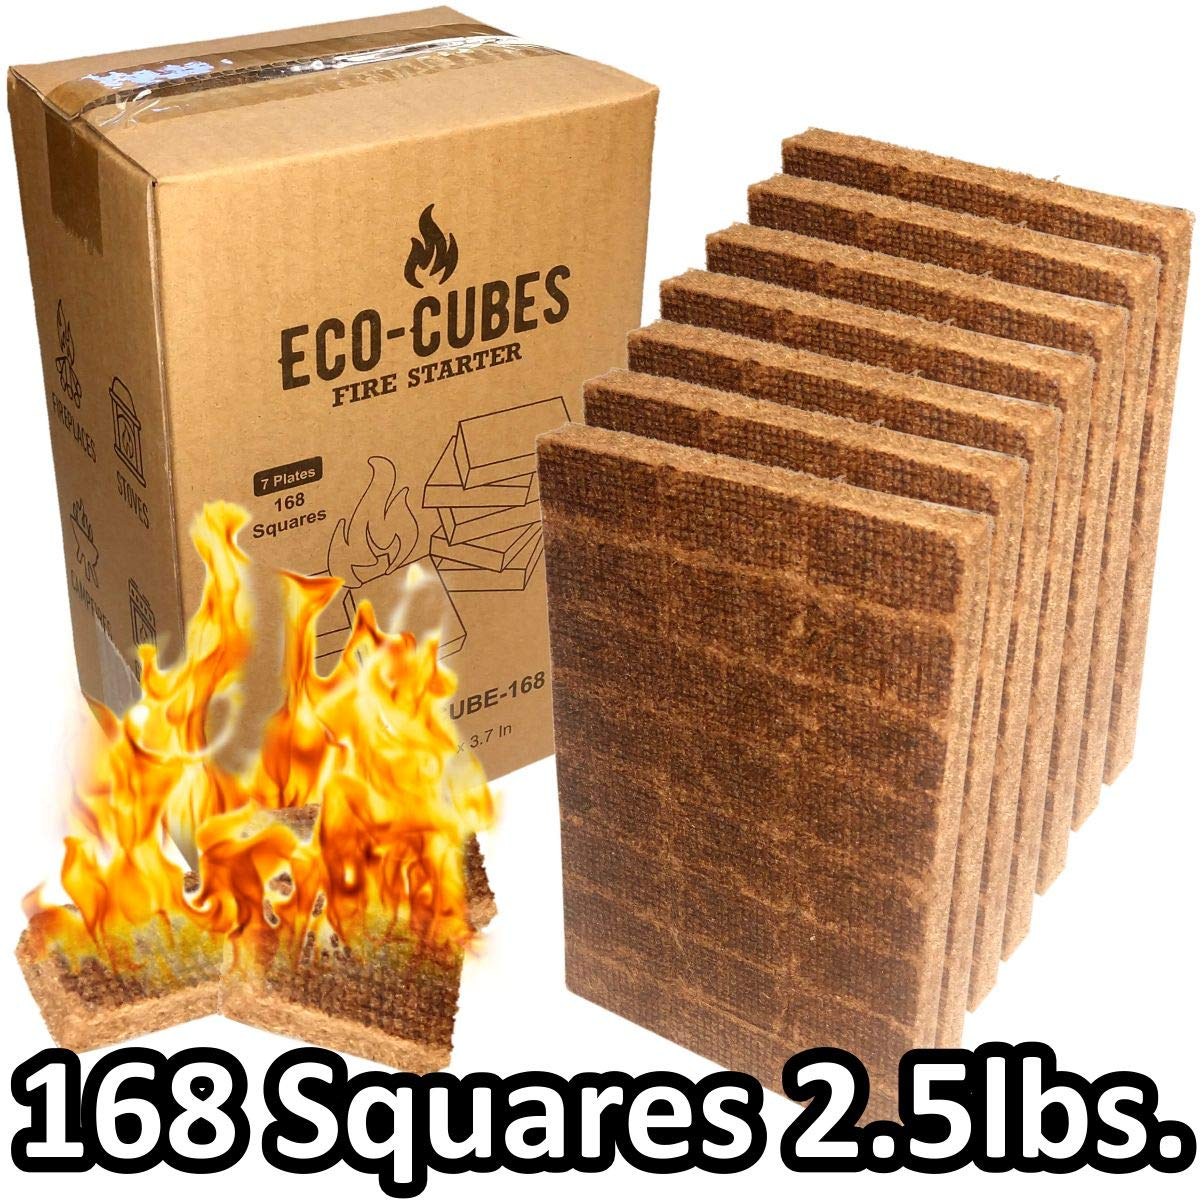 EasyGo Product Eco Cubes - Fire Starter Squares - Great Lighter for Chimney, Charcoal Grill, Fireplace, Campfire, Pellet Stove, Wood Stove (Qty168) by EasyGoProdcuts